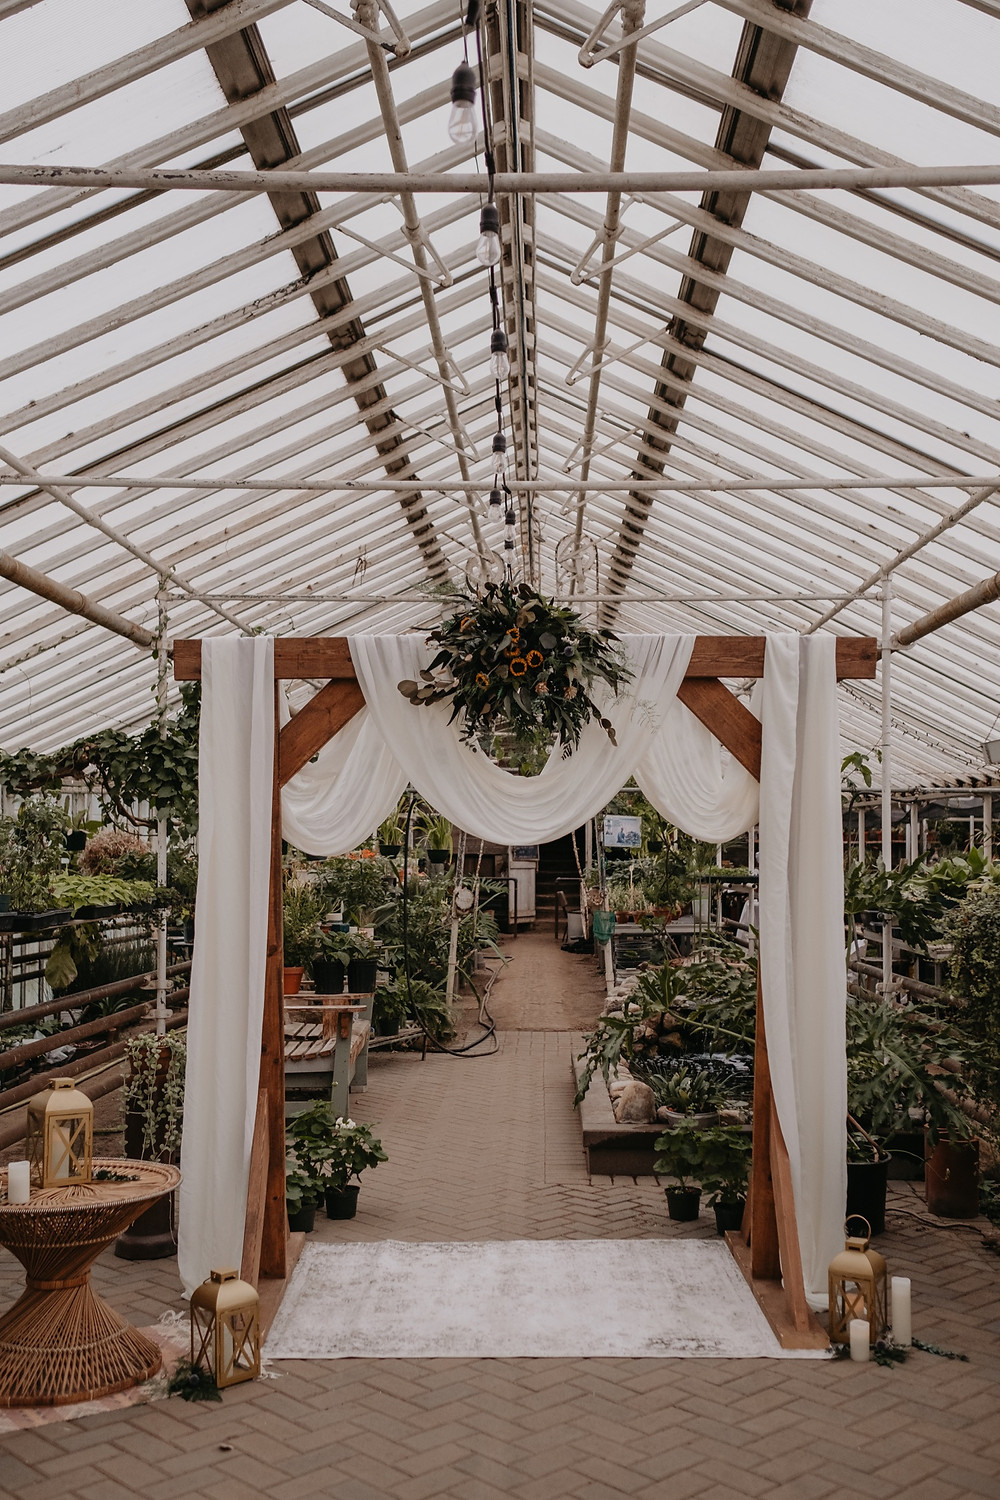 Wooden wedding ceremony structure by The Lost Forty. Photographed by Nicole Leanne Photography.